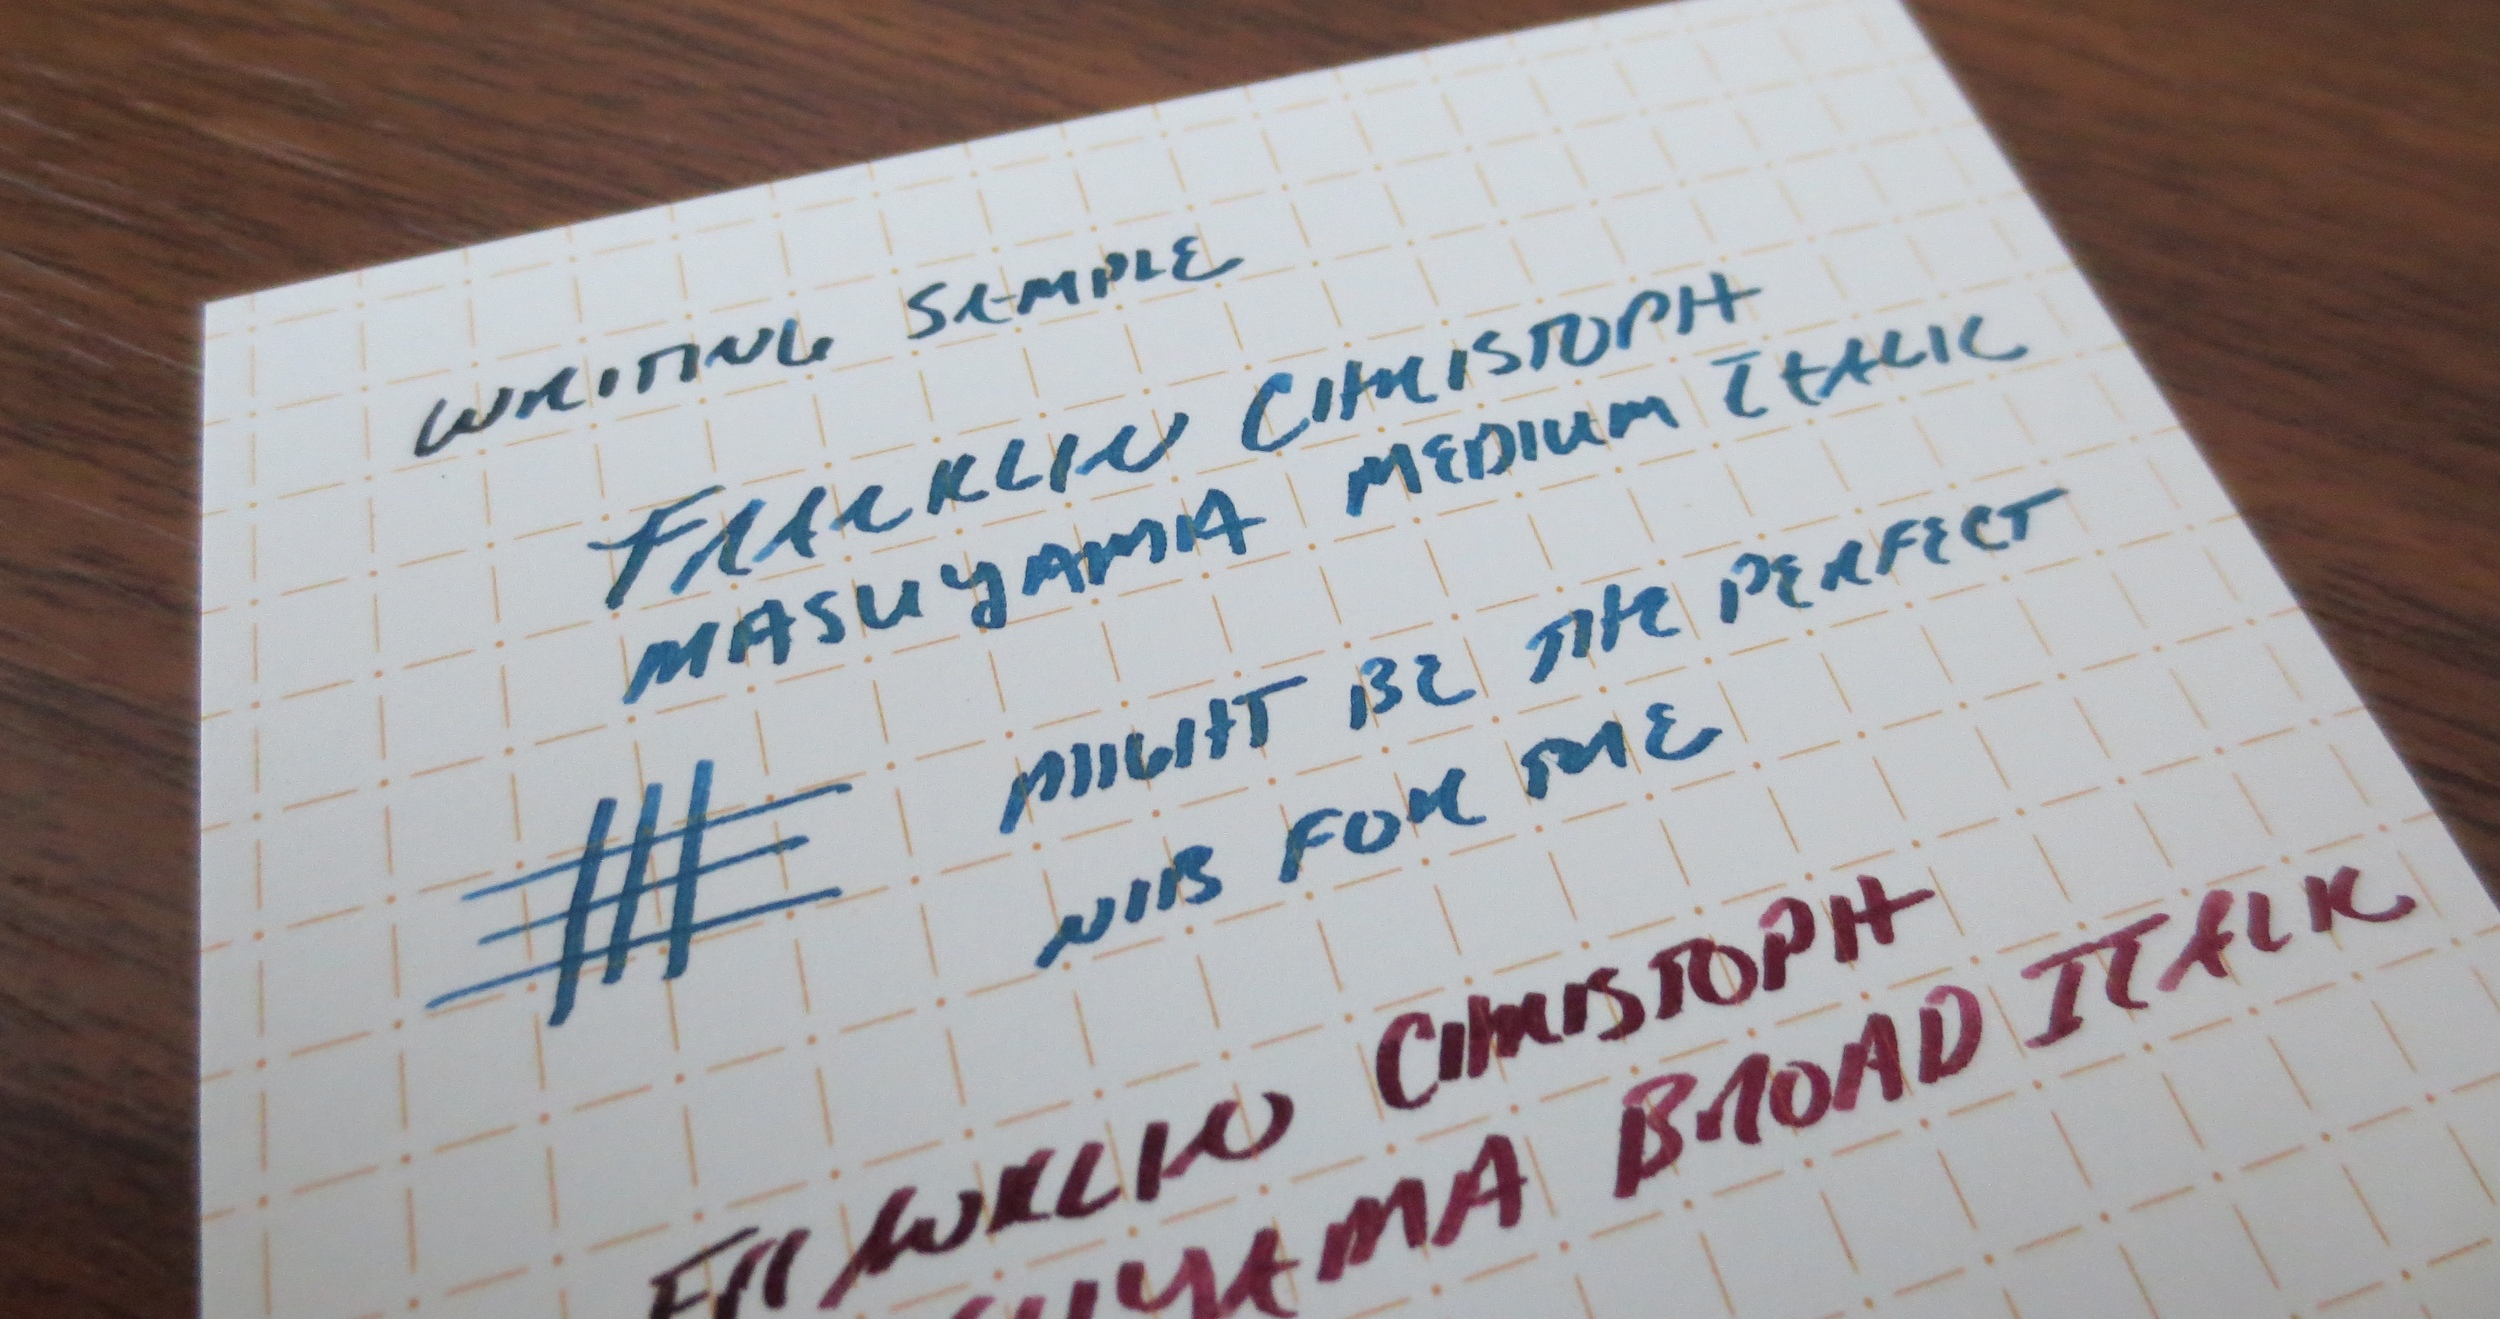 Writing Sample for the Model 65 (Masuyama Medium Cursive Italic) in Waterman Blue-Black.